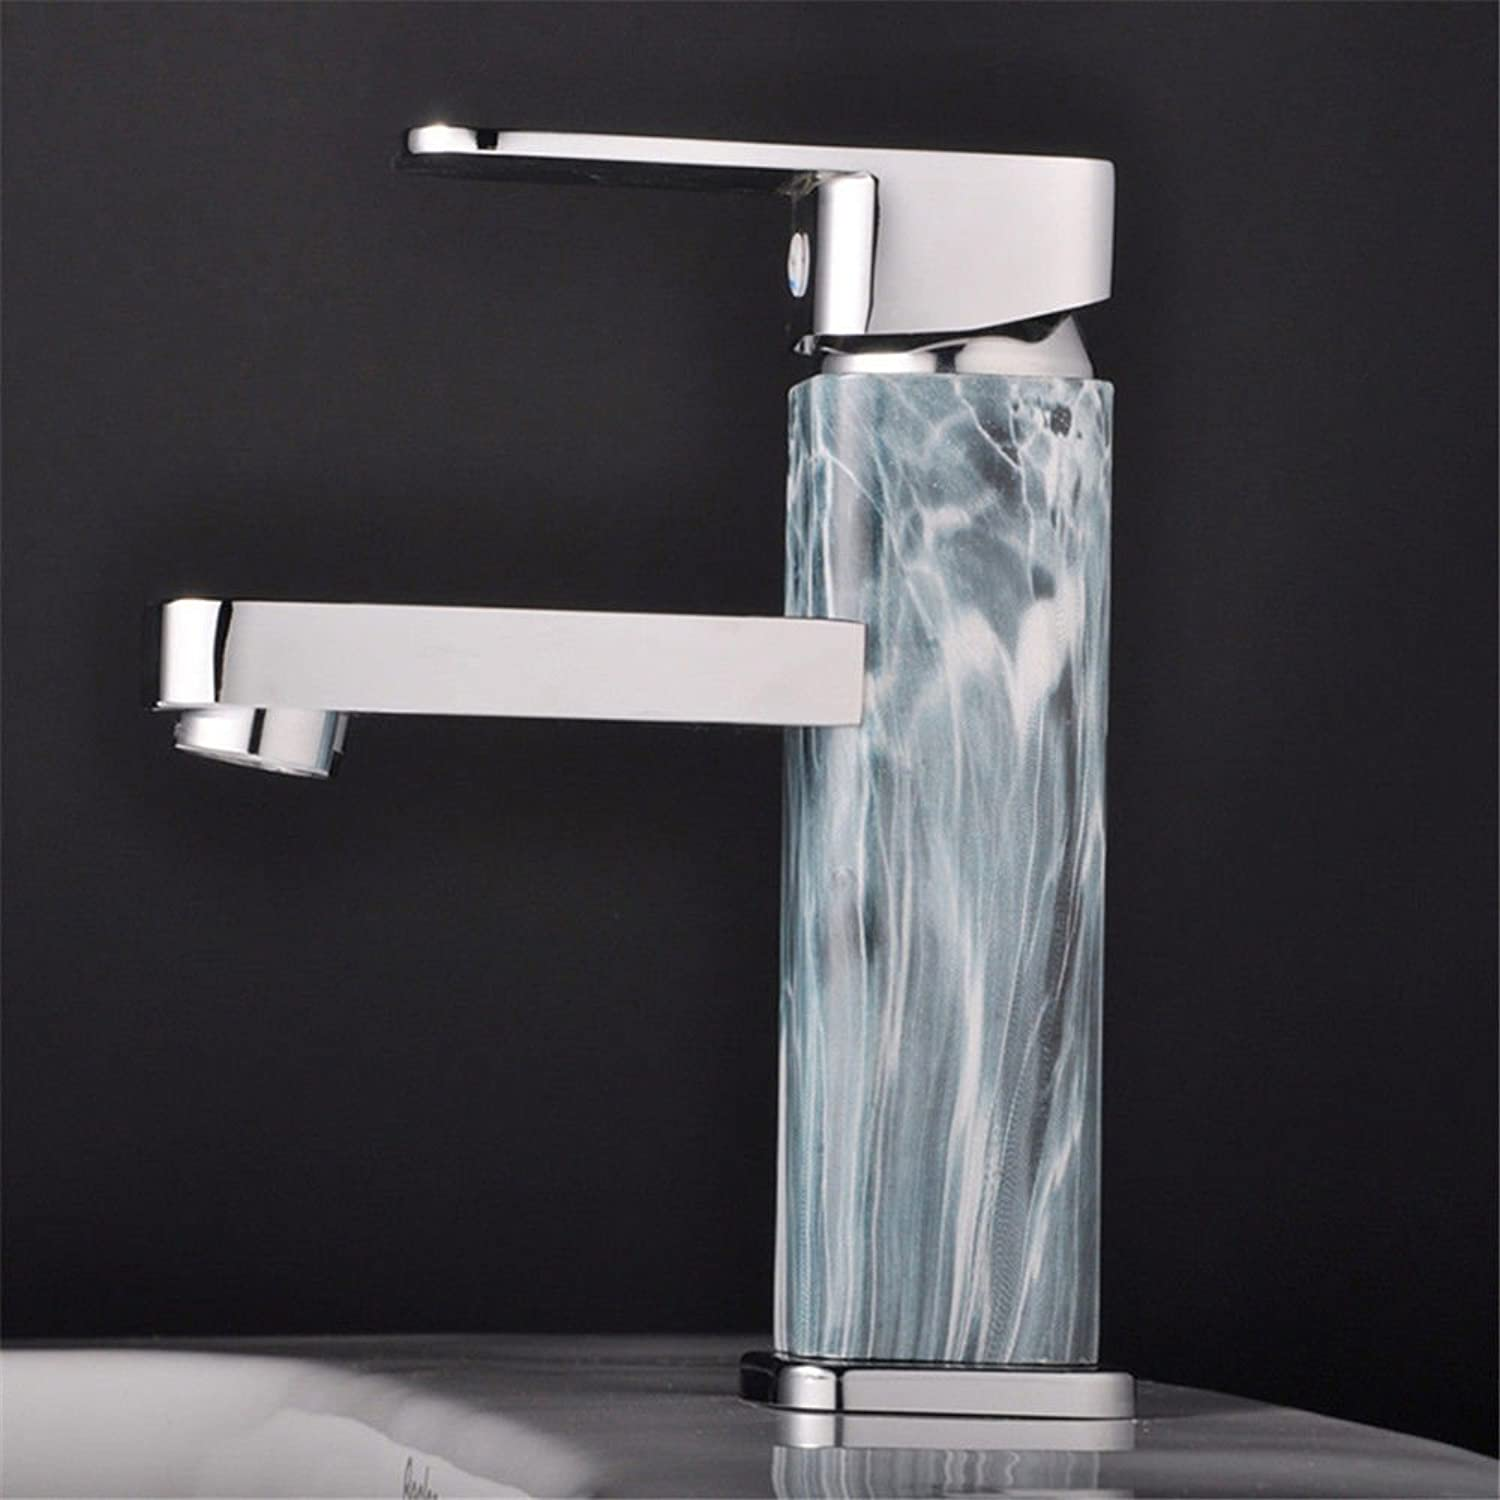 AQMMi Bathroom Sink Faucet Basin Mixer Tap Hot and Cold Water 1 Hole Basin Sink Tap Bathroom Bar Faucet